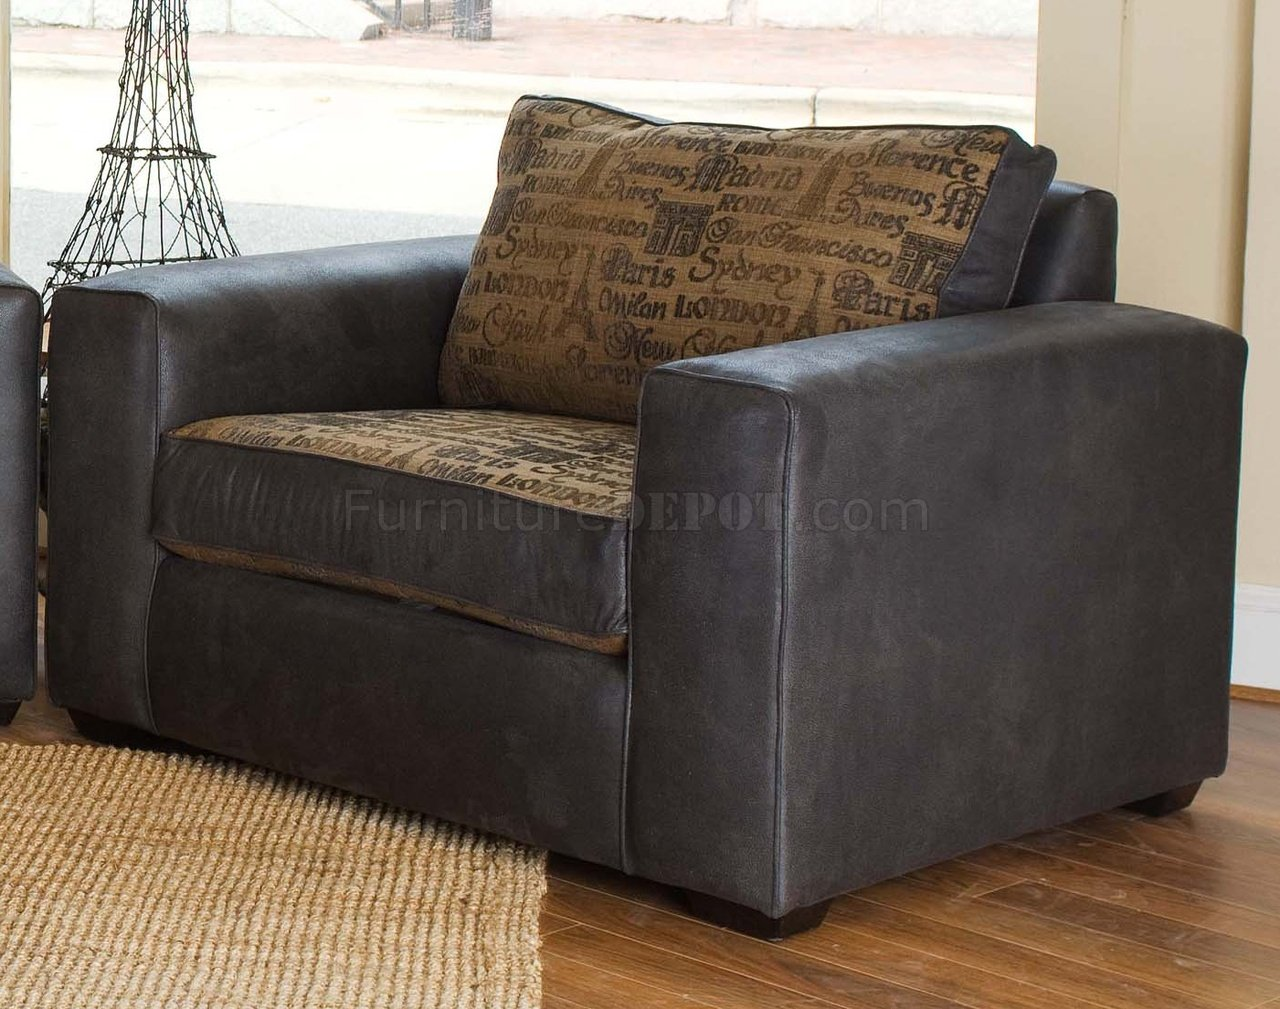 Fabric leather modern living room sofa large chair set for Large living room chairs